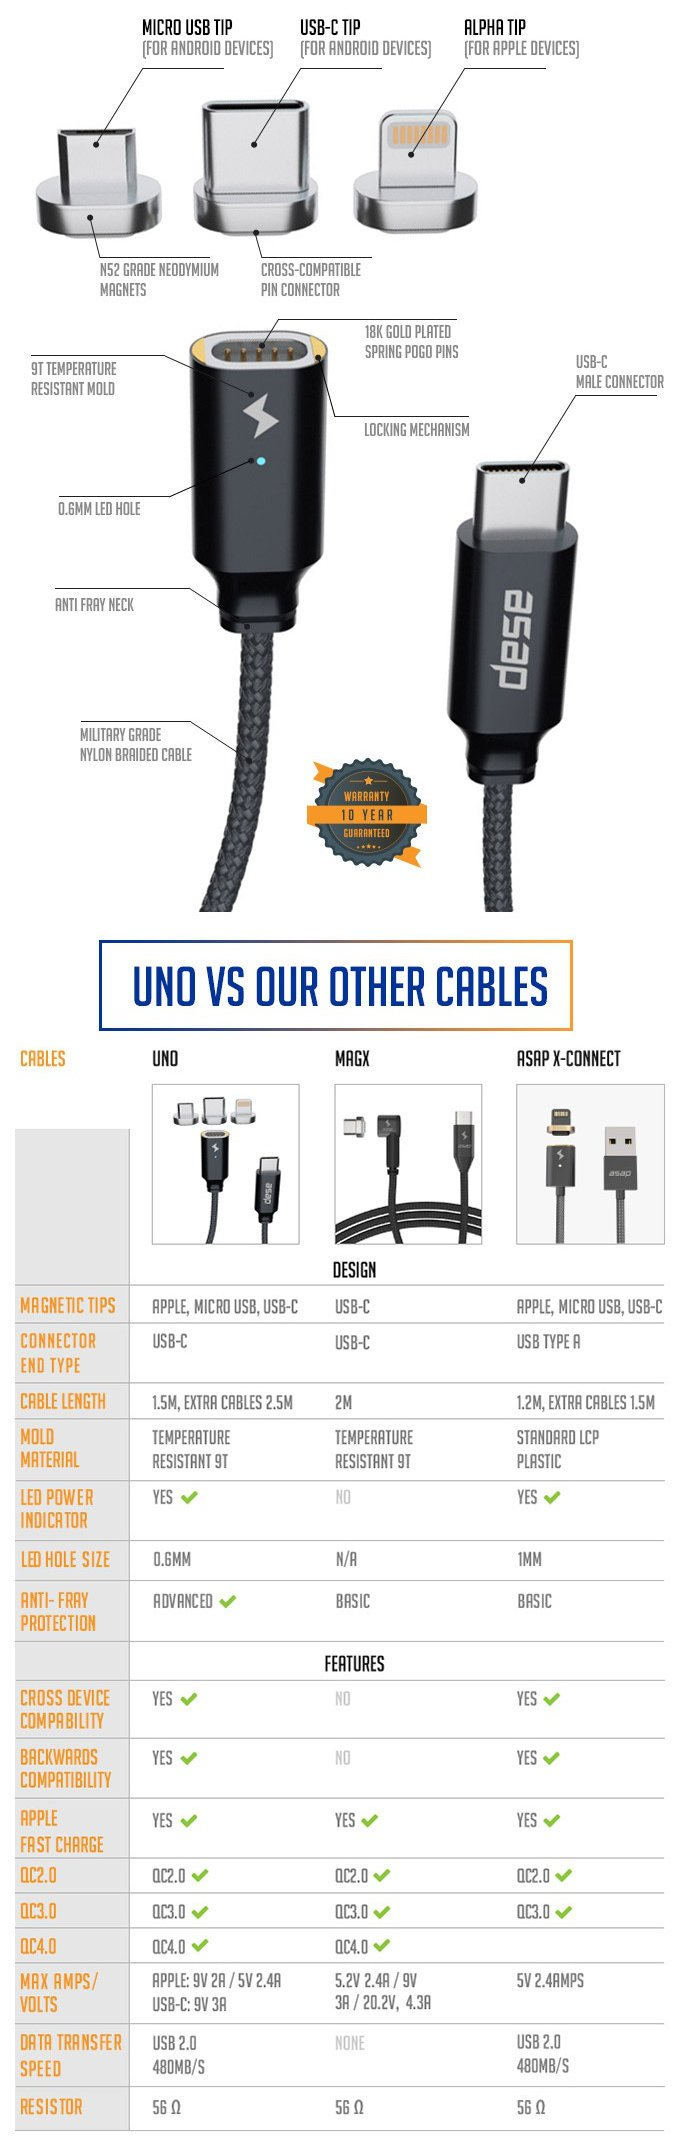 USB-C magnetic charging cable